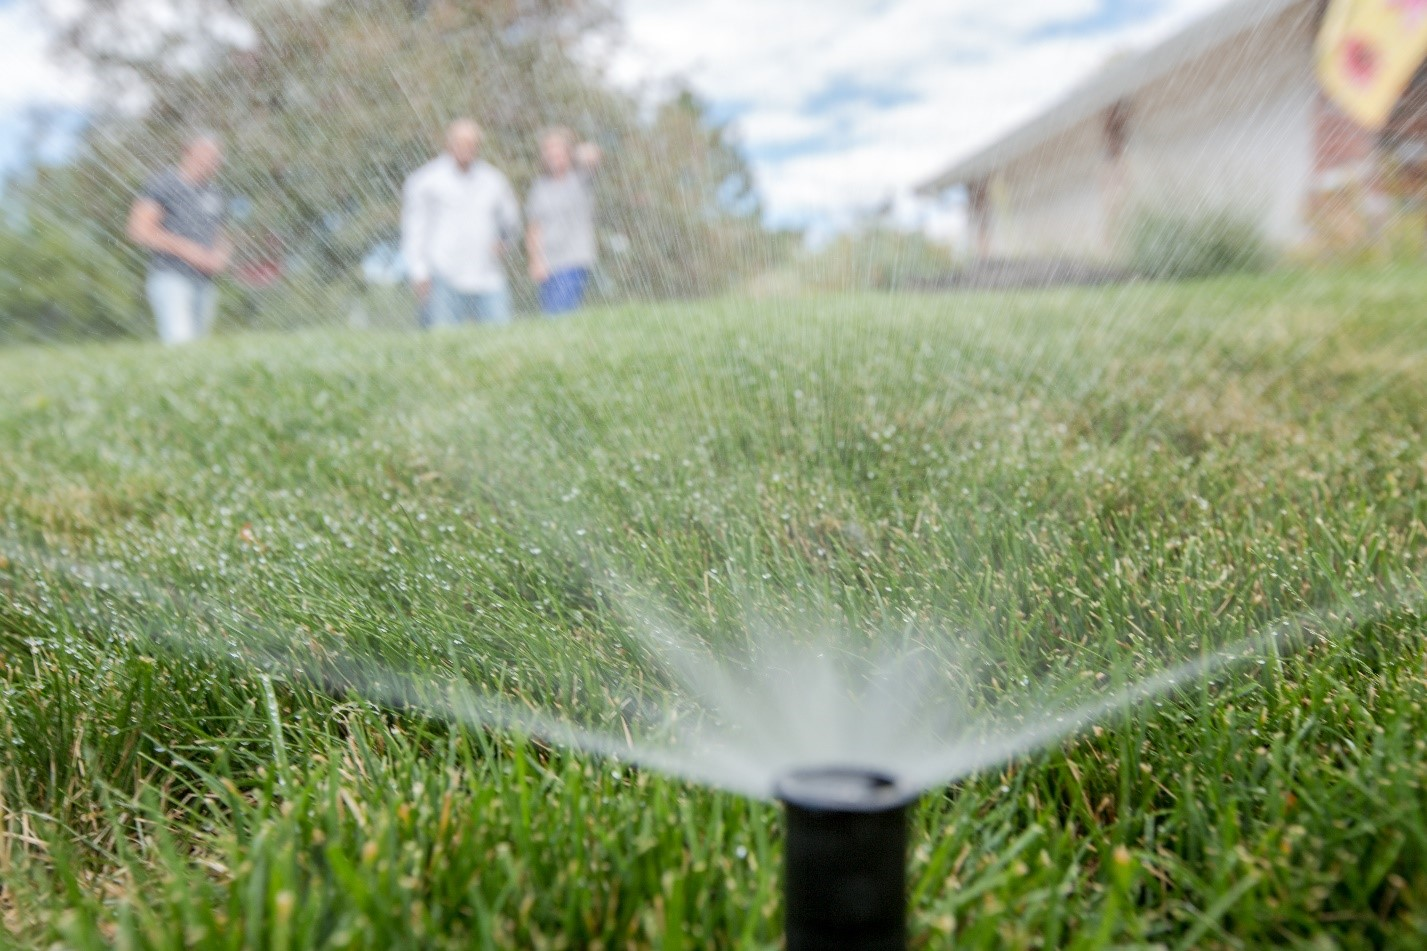 Many customers in Denver Water's service area use 18 gallons per square foot or more to water bluegrass lawns. Experts say only 12 gallons per square foot is required to keep the grass lush and healthy. Photo credit: Denver Water.